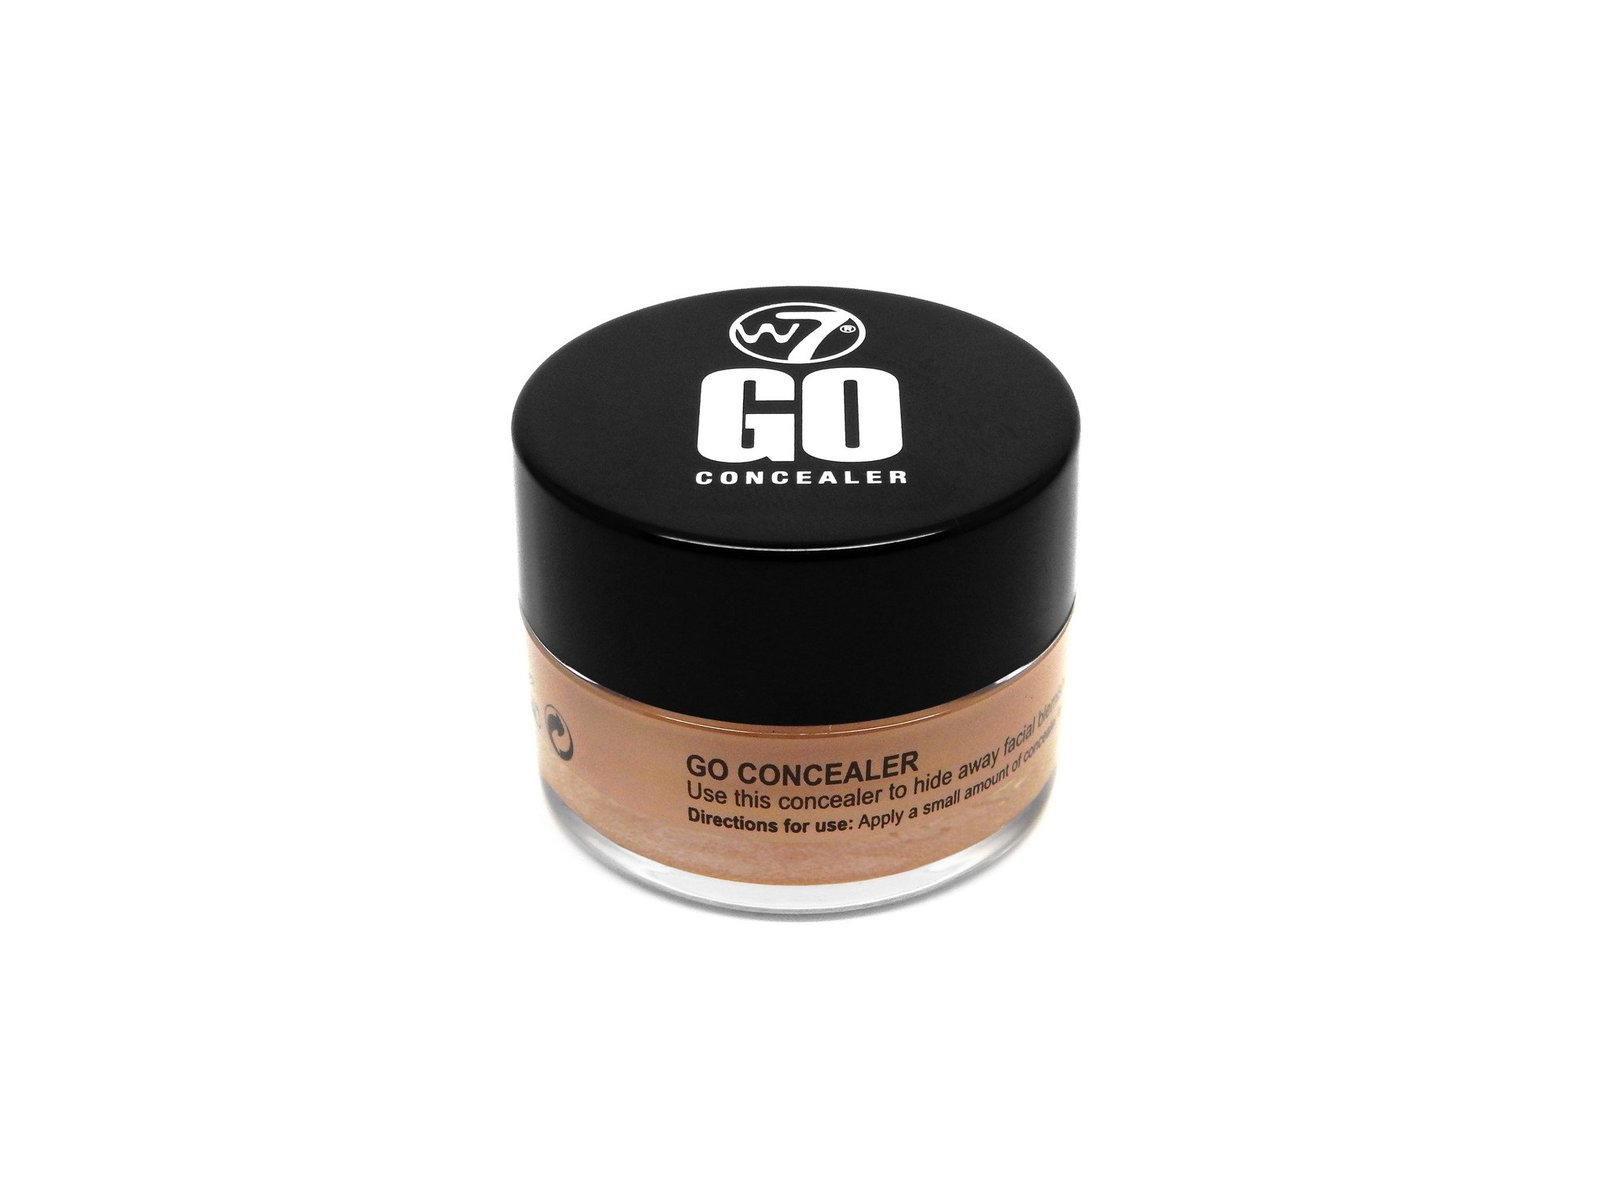 W7 Go Concealer (Medium Deep) image